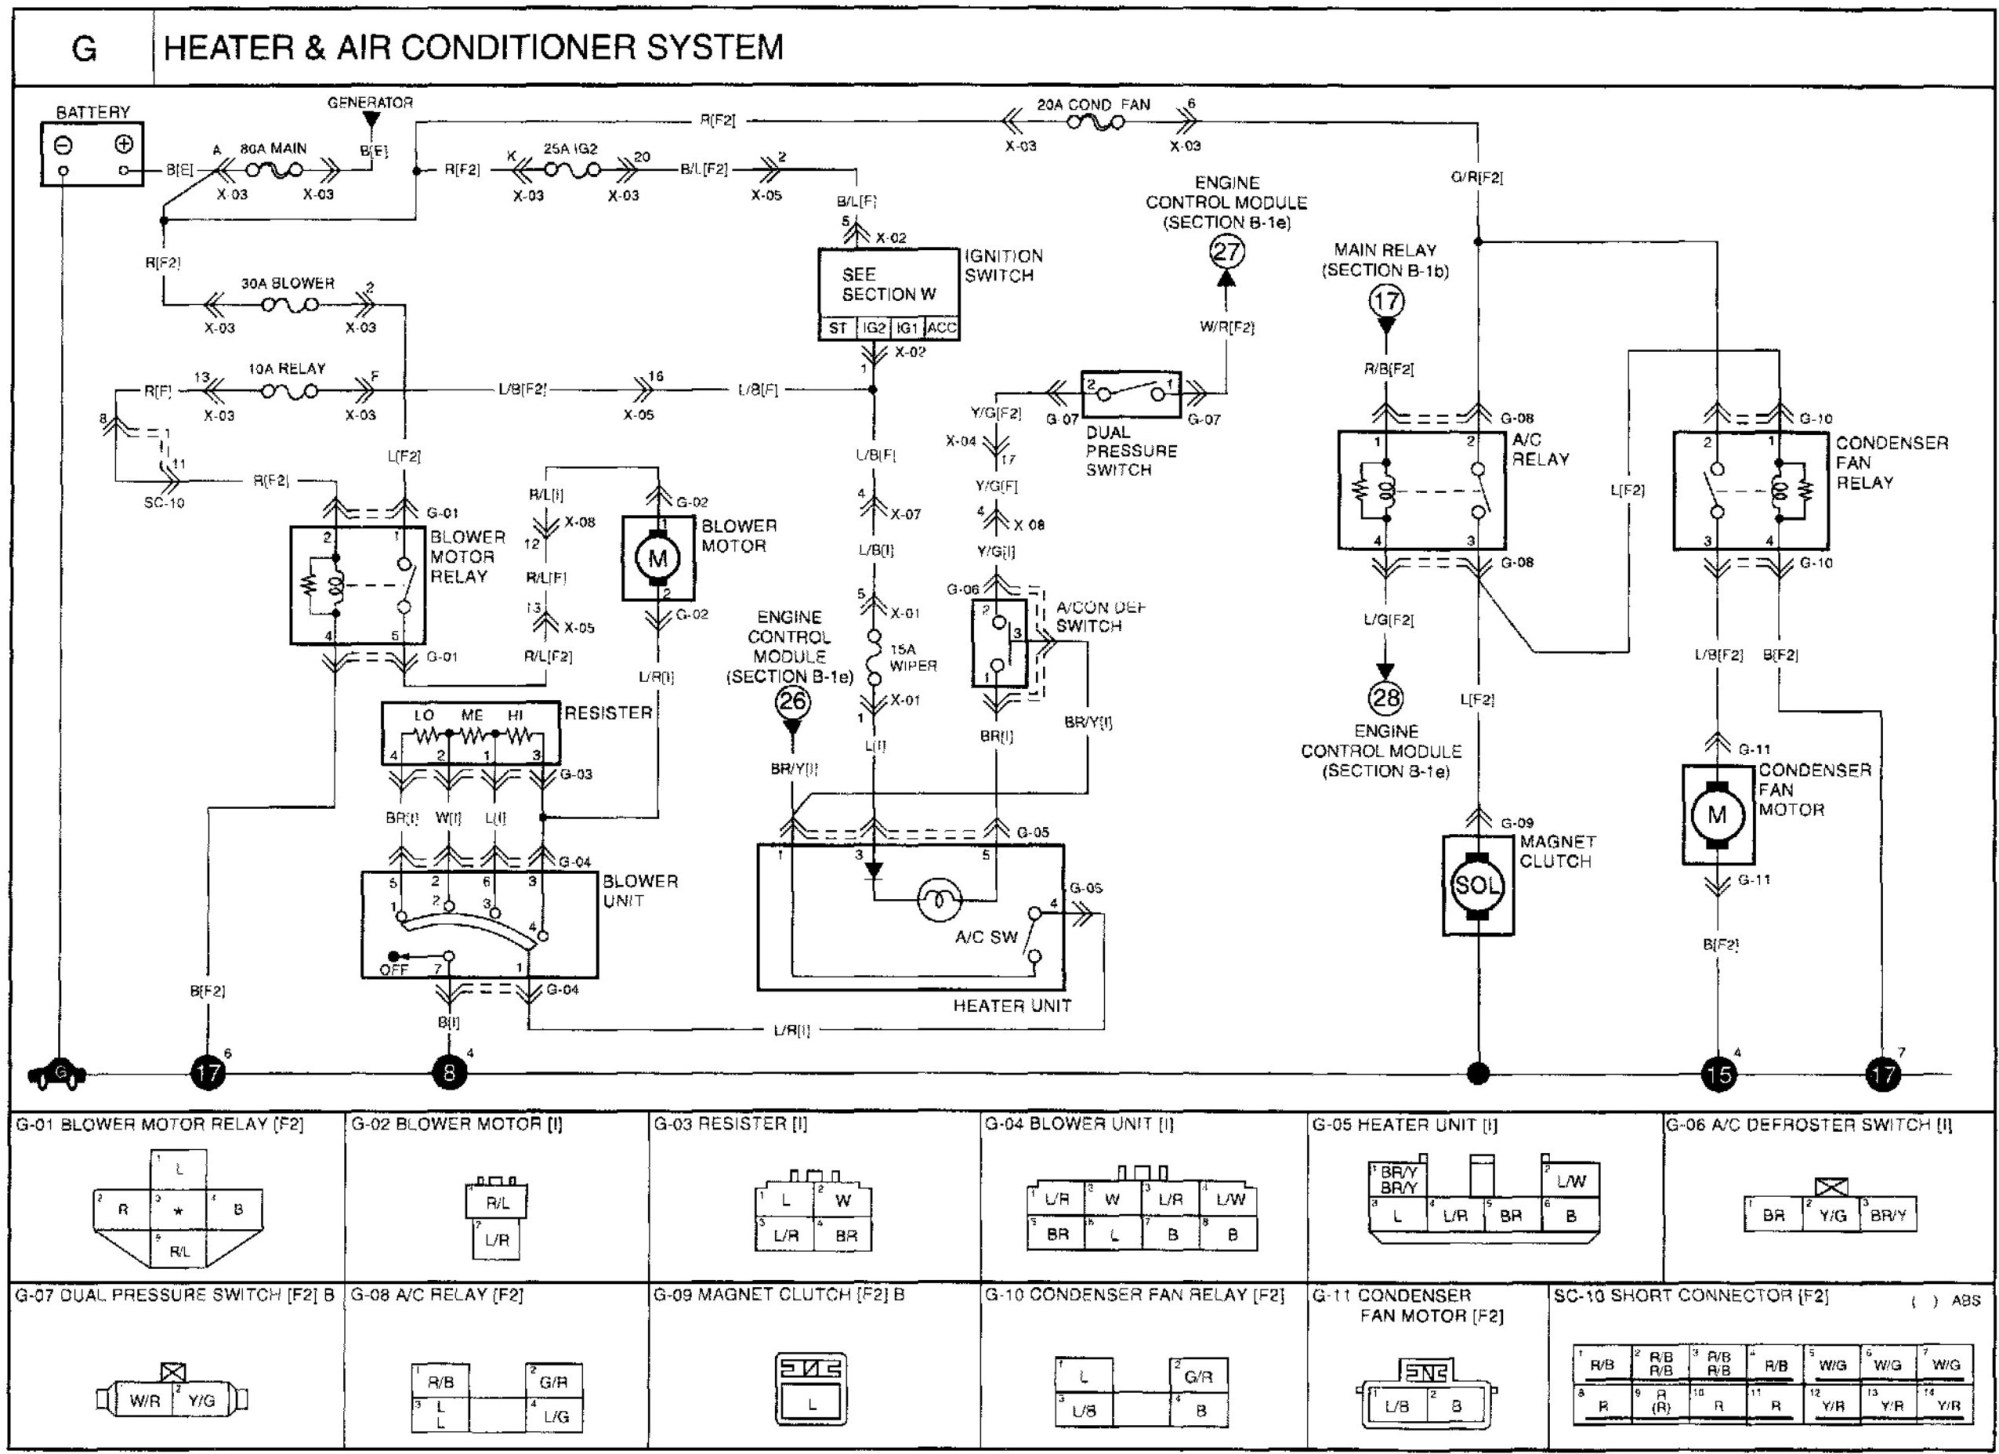 hight resolution of 2002 kia sportage ac wiring diagram wiring diagram 2002 kia sportage ignition switch wiring diagram data